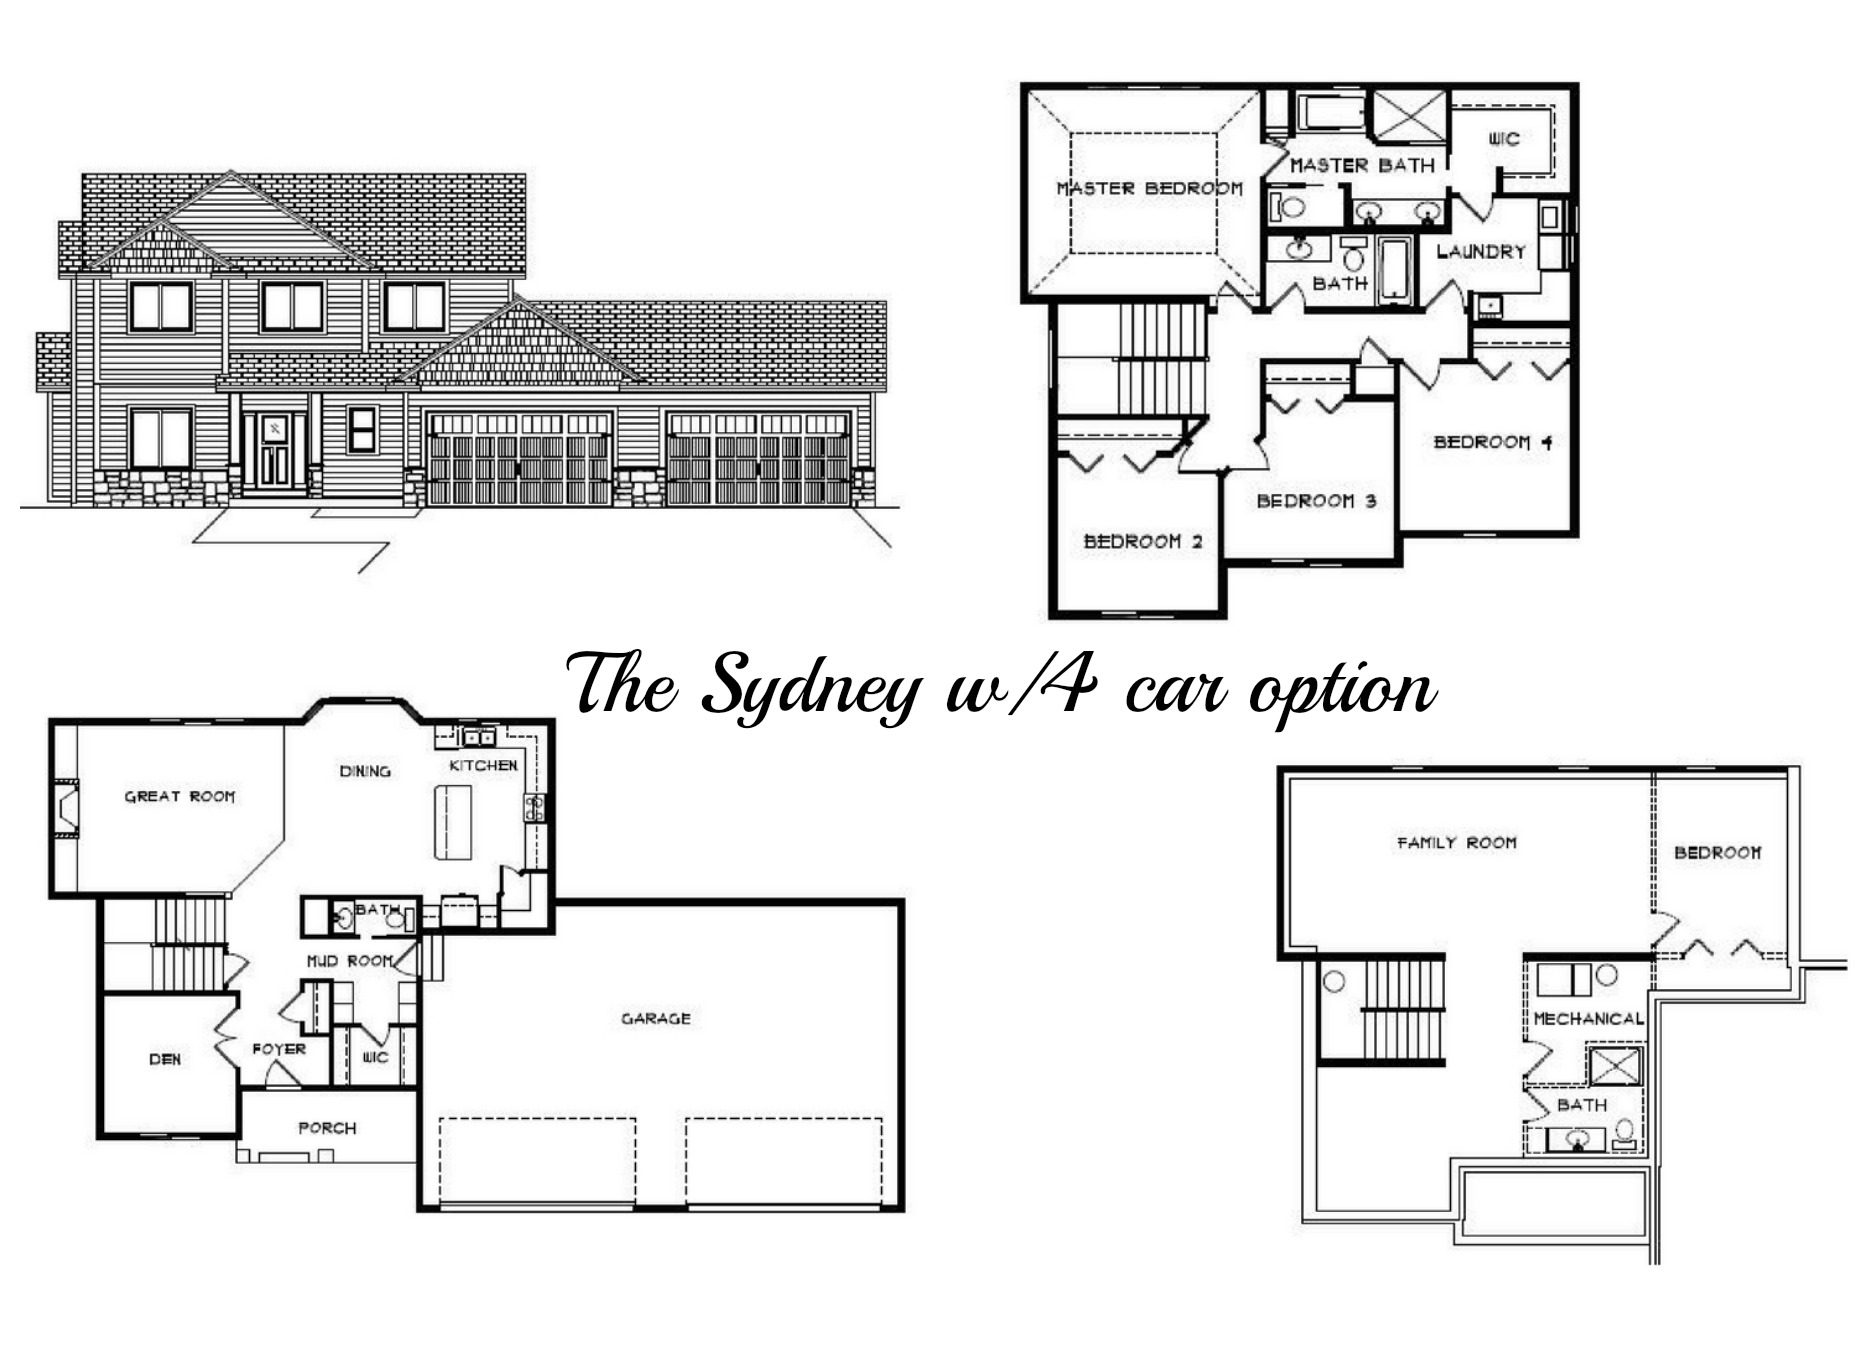 2 story floor plan 4 car